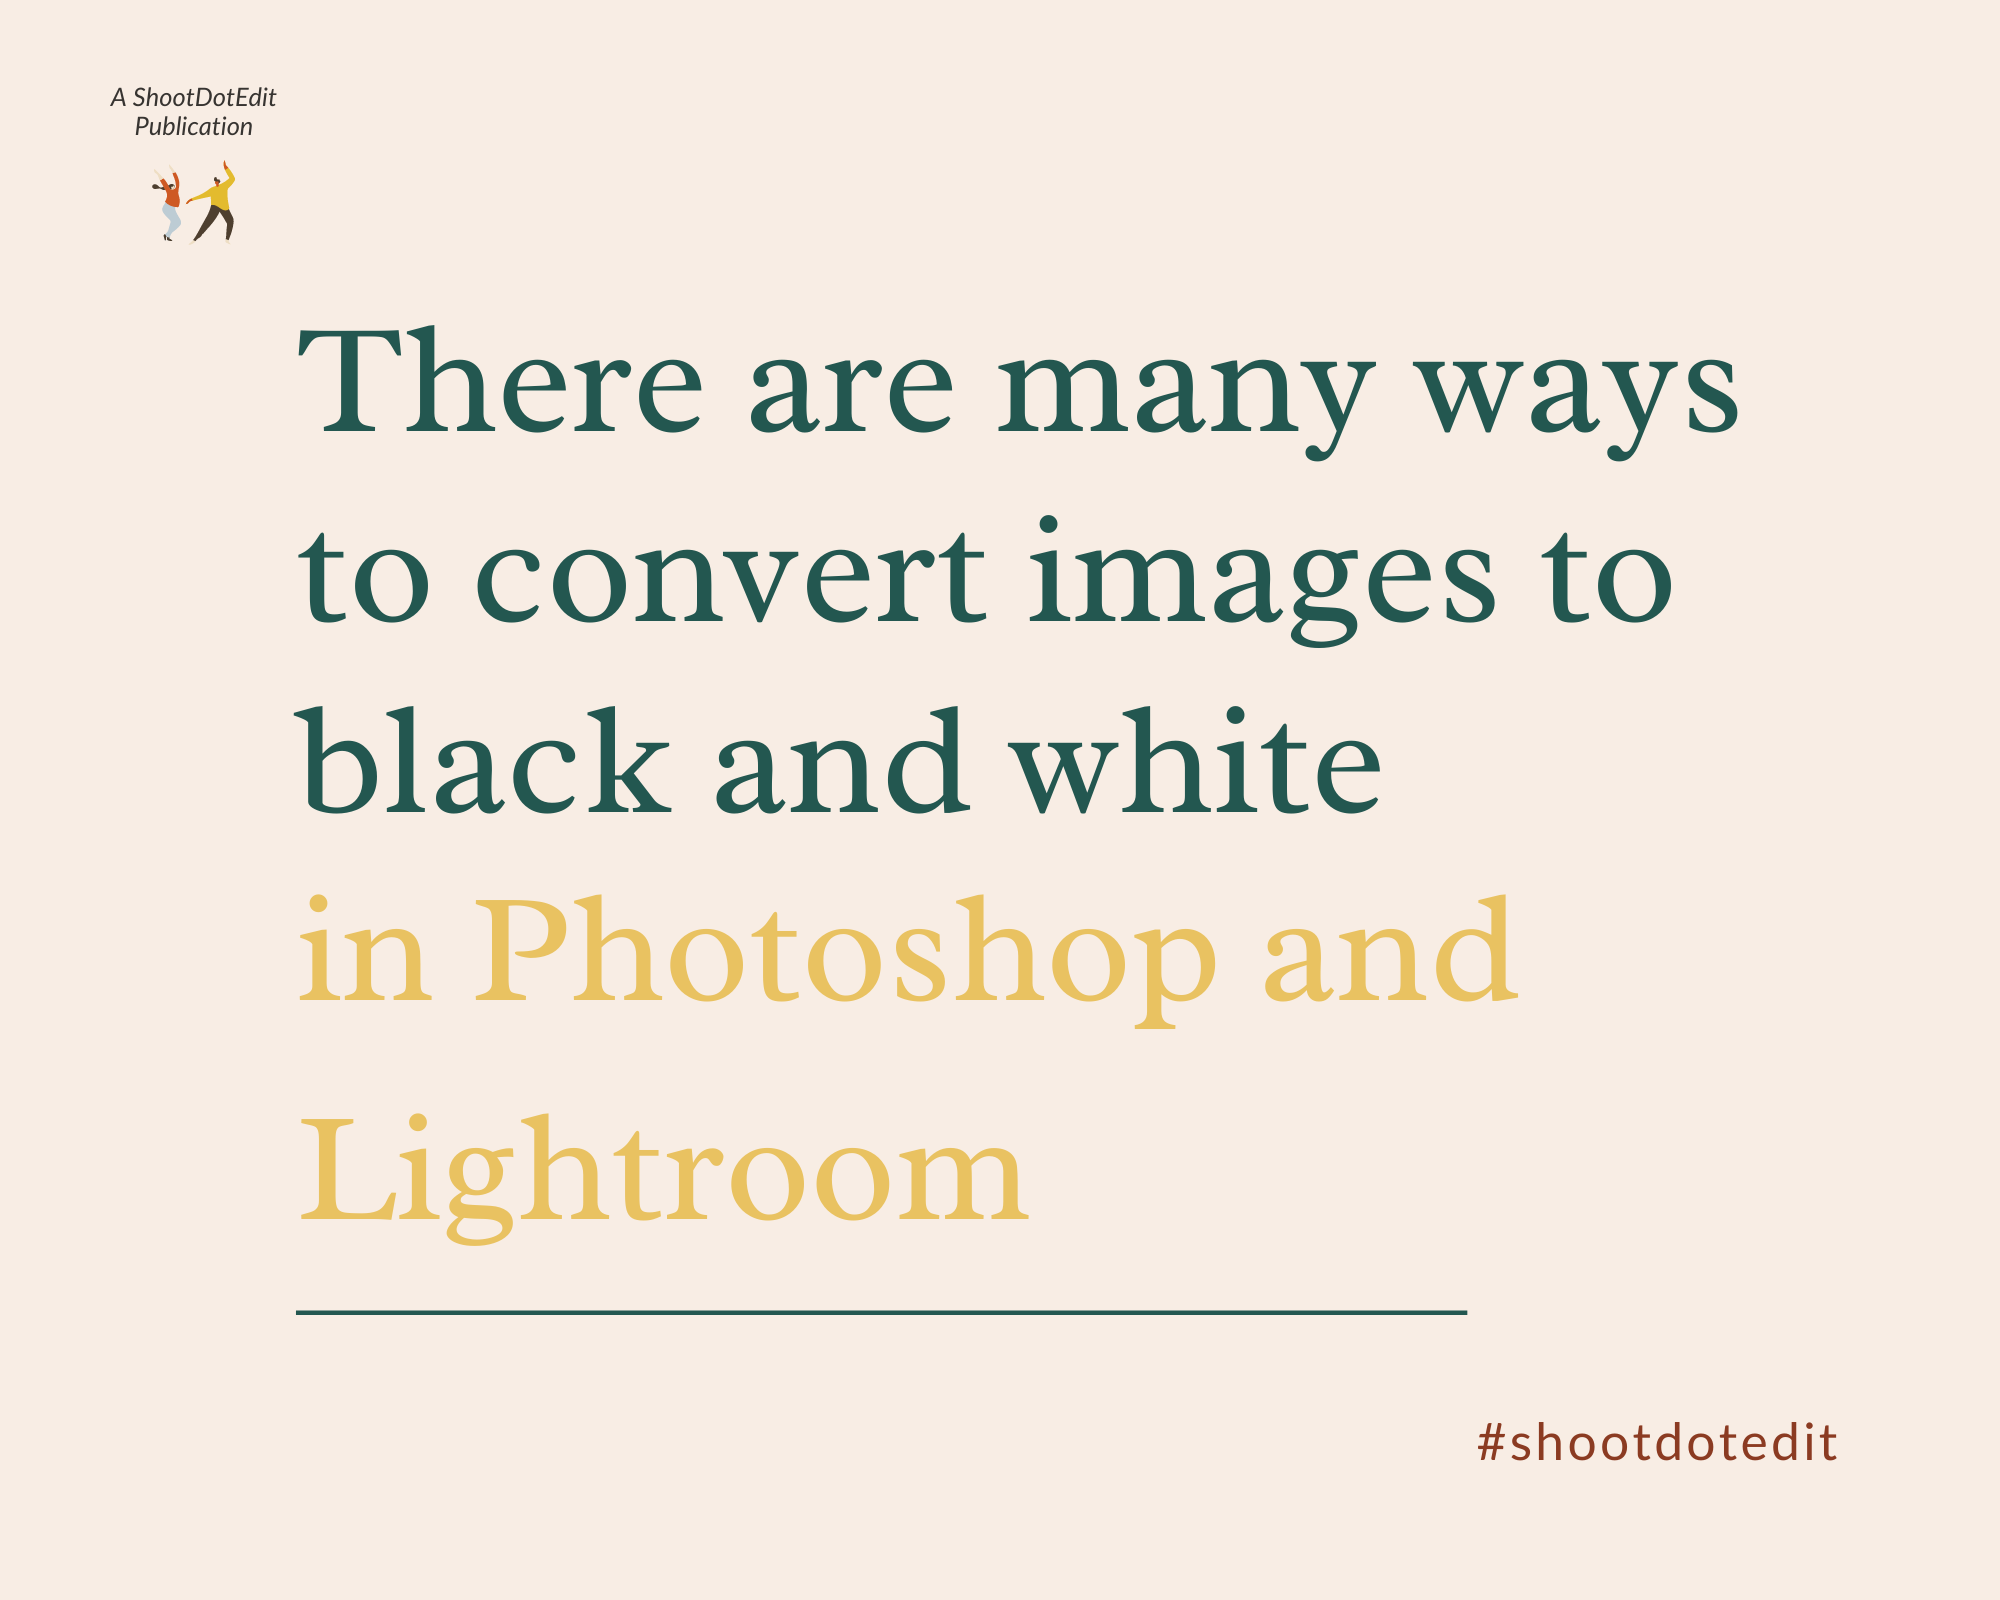 Infographic stating there are many ways to convert images to b&w in Photoshop and Lightroom